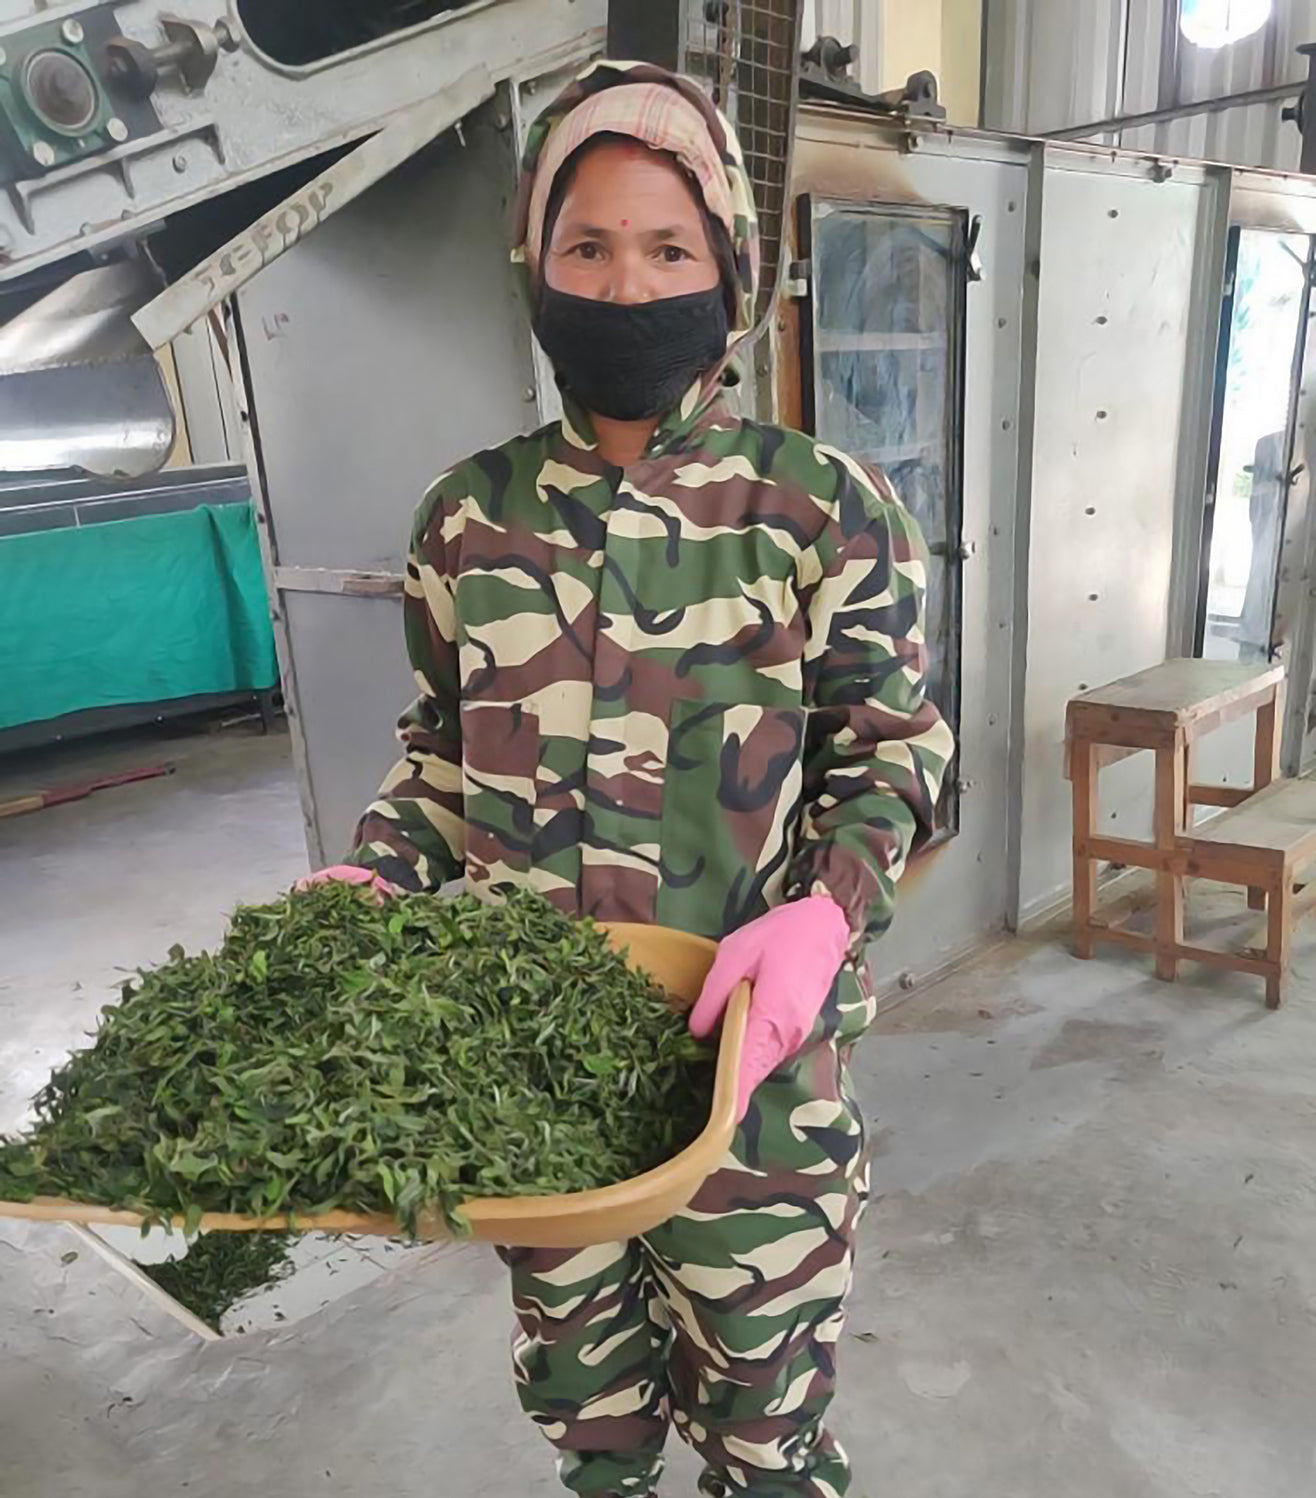 Tea worker suited up in camo, mask, and gloves